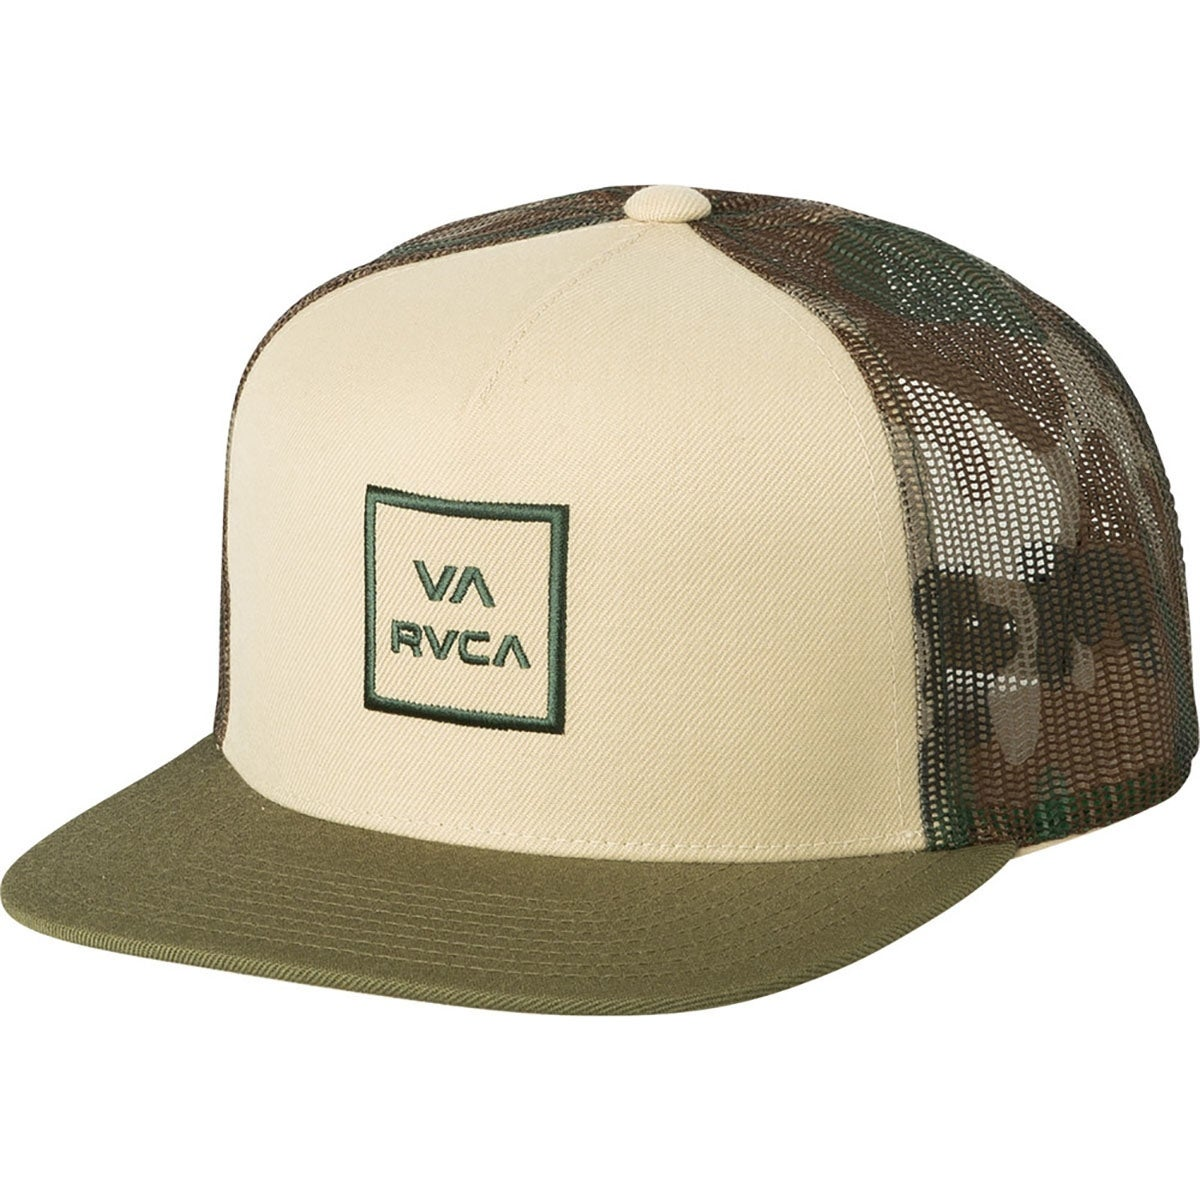 0d25ceb2ef9 Shop RVCA All The Way III Adjustable Mid-Fit Mesh-Back Trucker Hat - Free  Shipping On Orders Over  45 - Overstock.com - 21130786